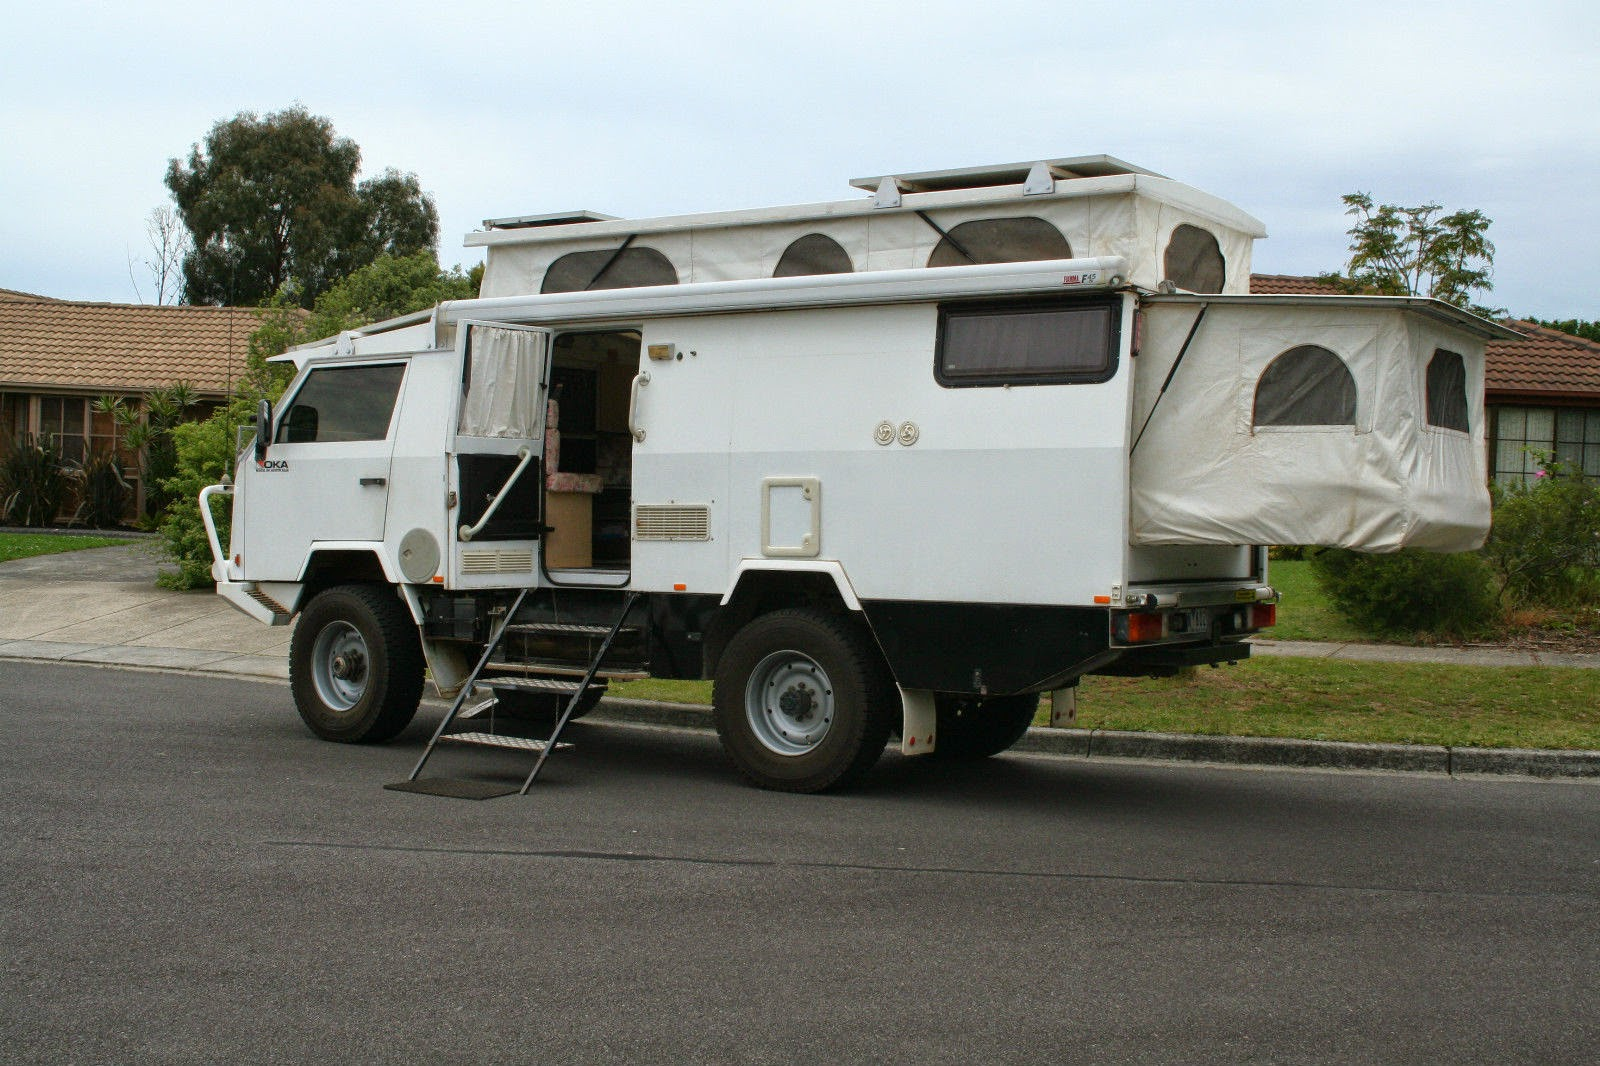 Used Rvs Oka 4x4 Off Road Travel Poptop For Sale By Owner